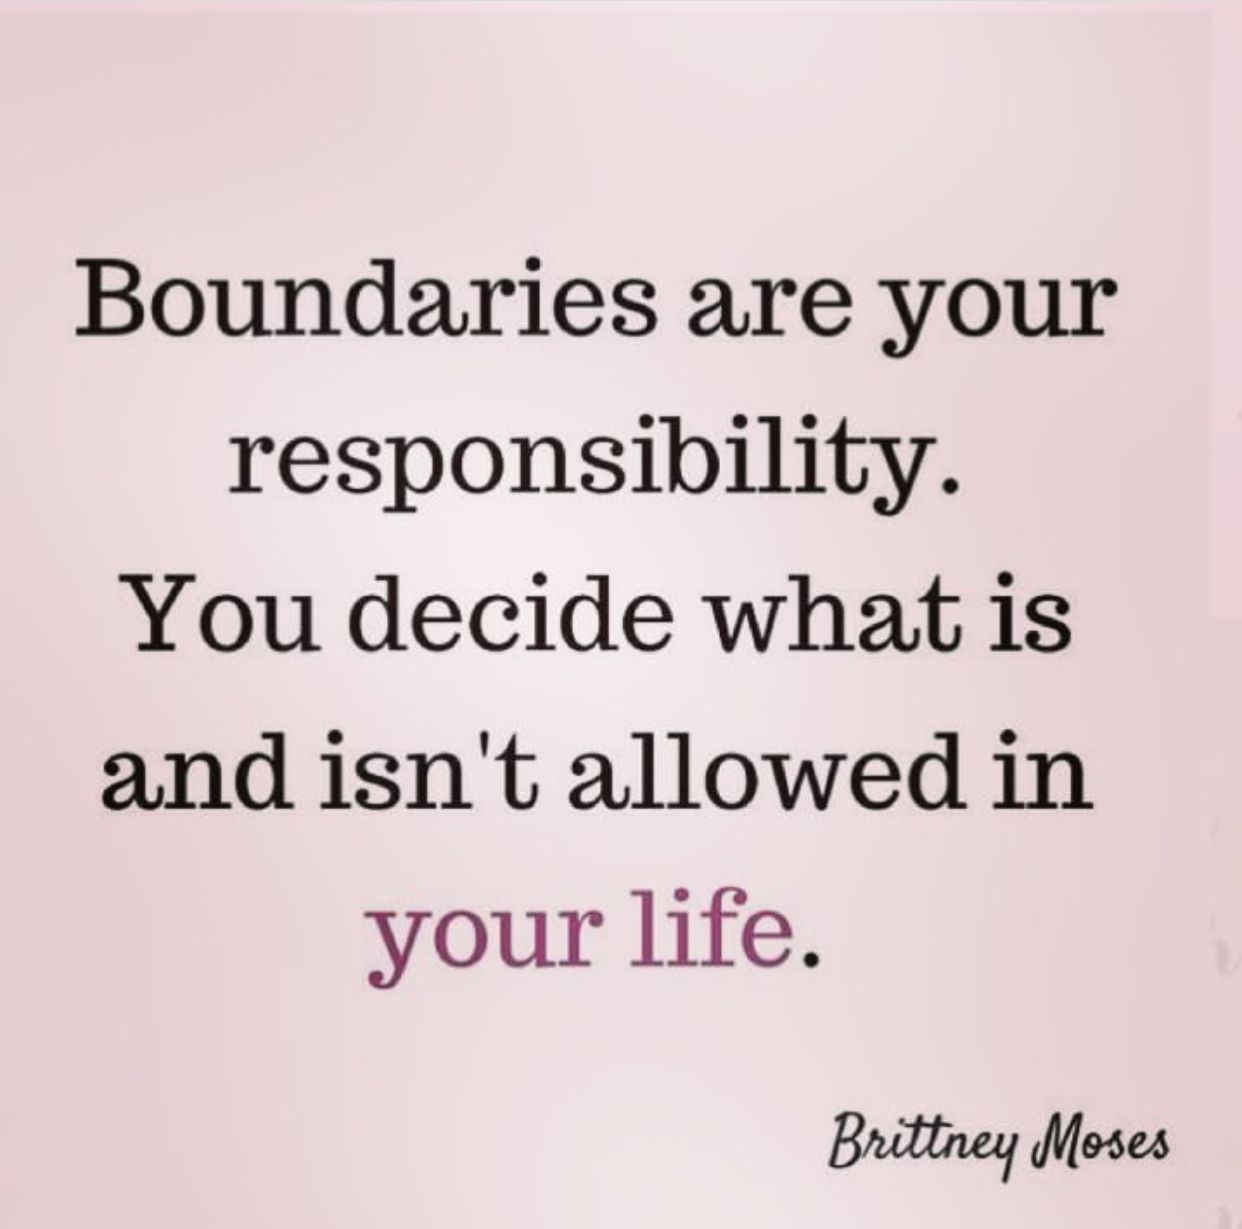 Boundaries are your responsibility. You decide what is and isn't allowed in your life.